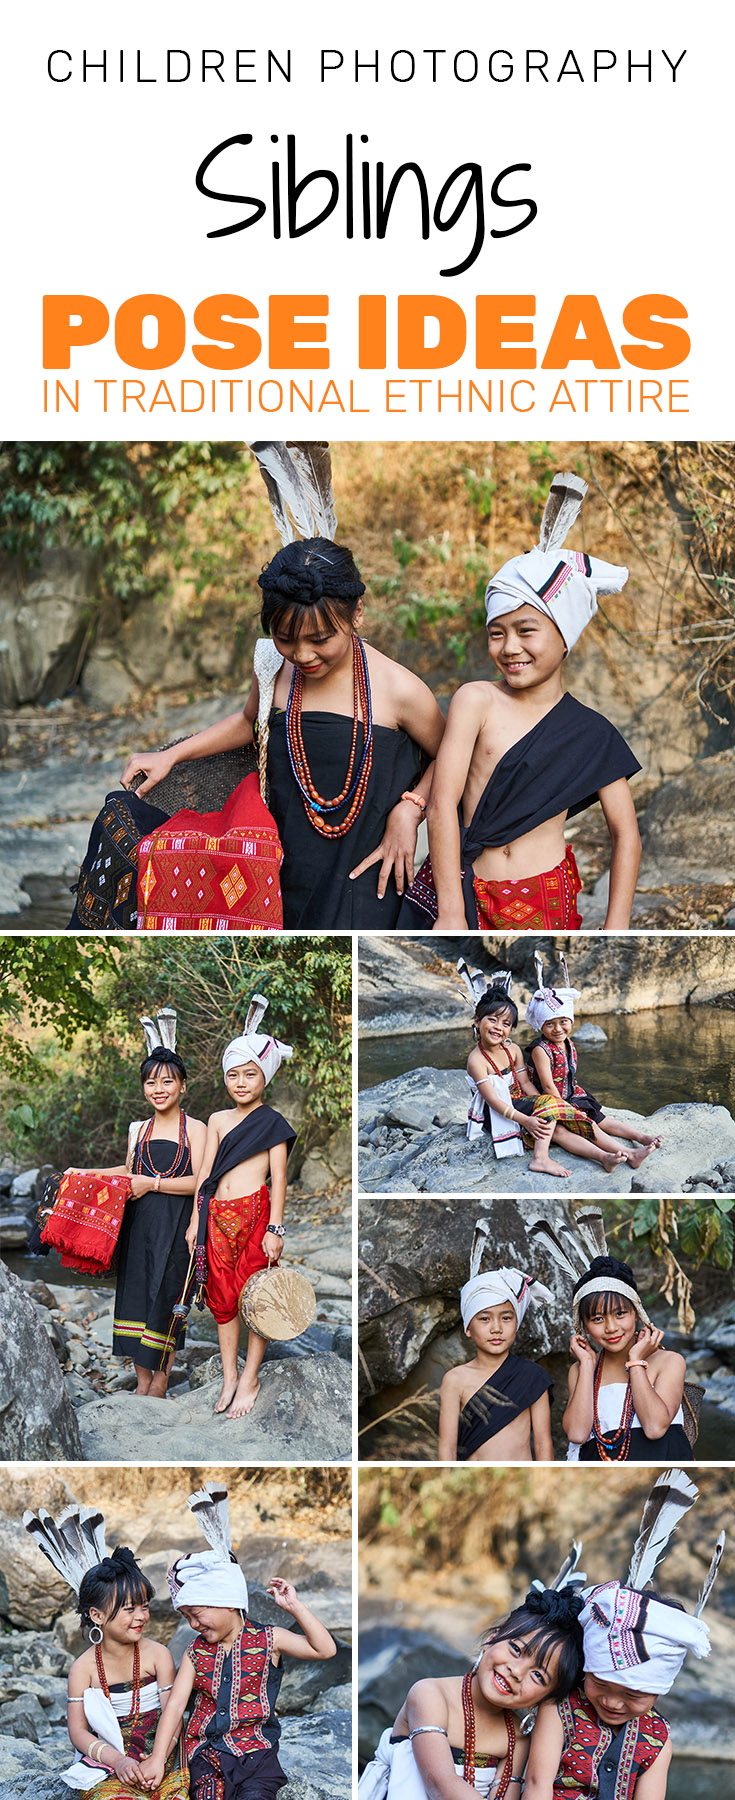 Ideas for Children Photography - Siblings Pose ideas in traditional ethnic attire with props.